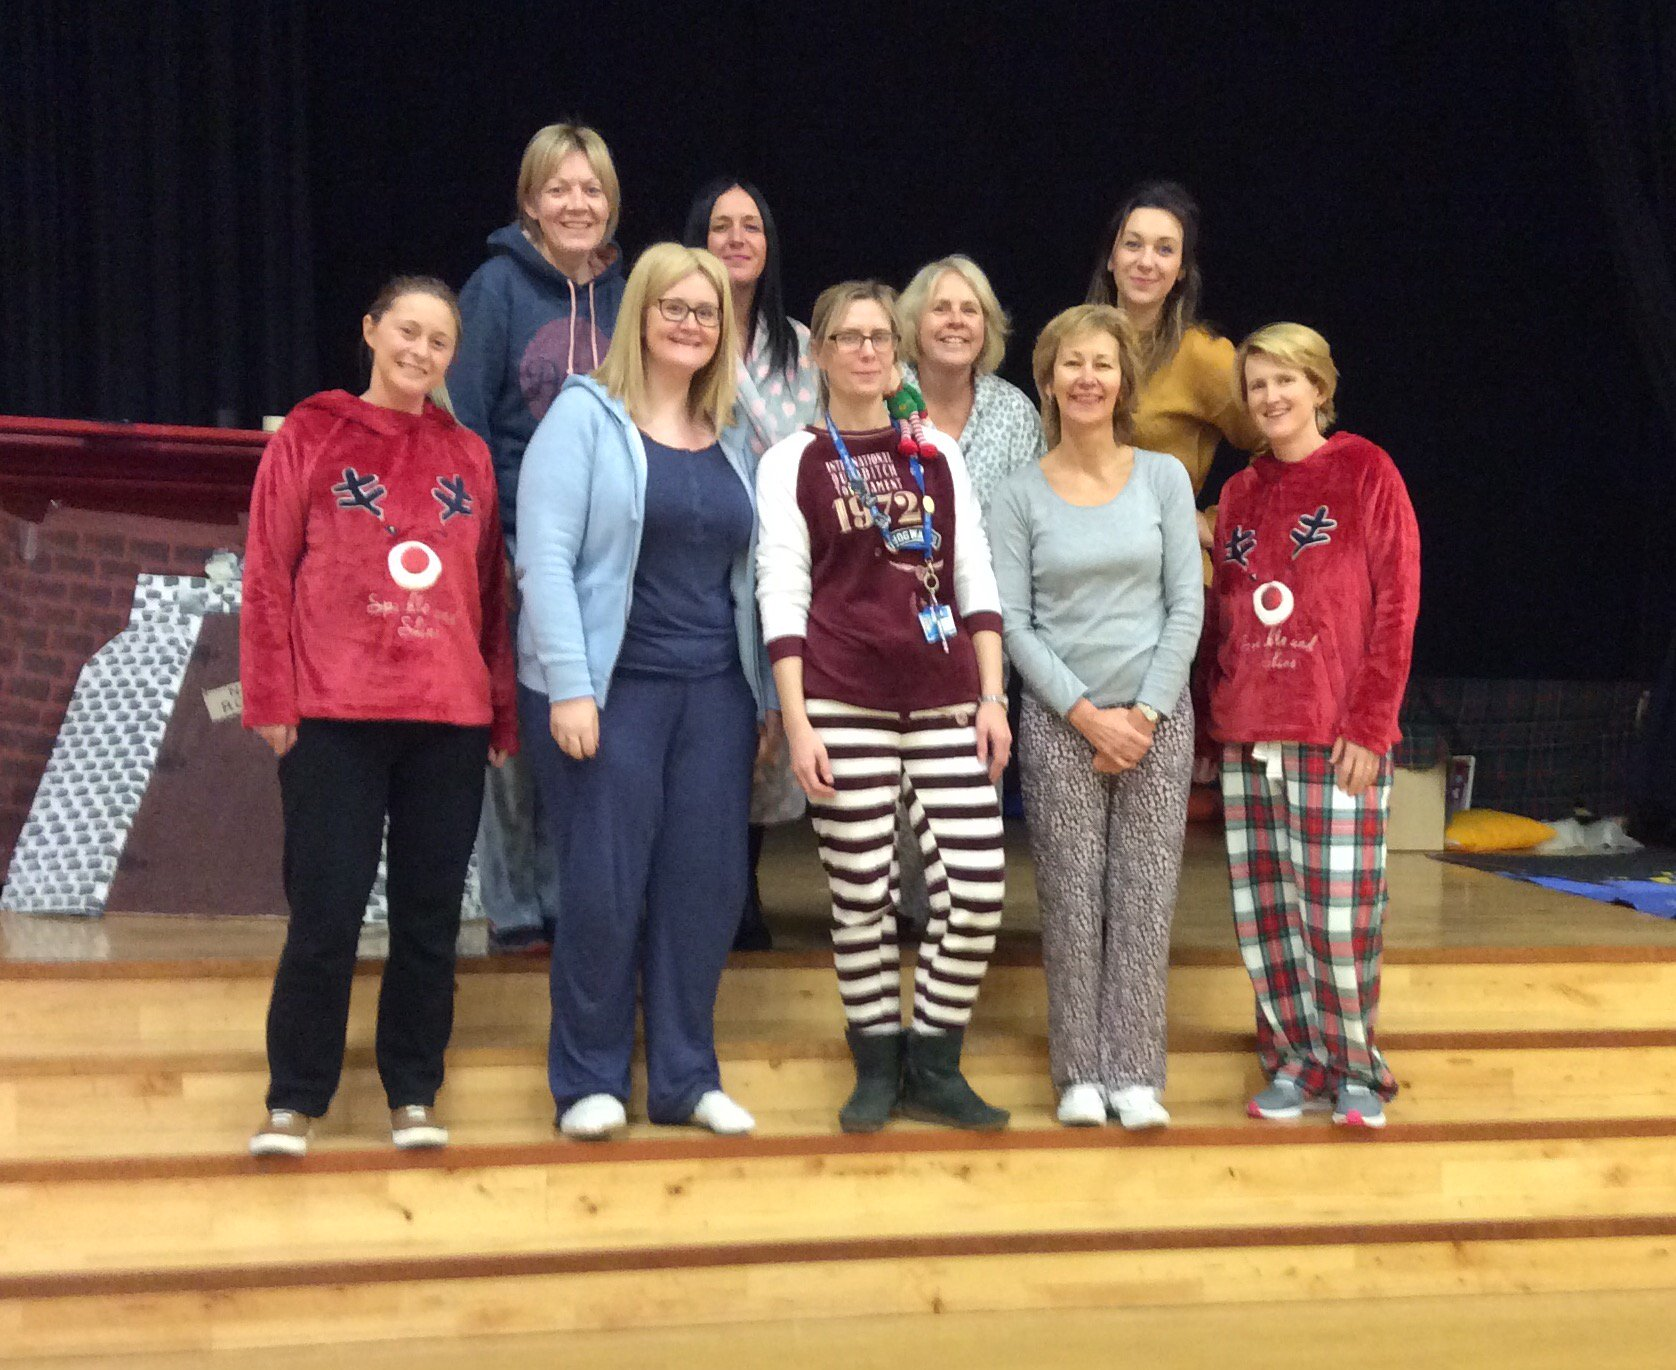 Even the teachers wore their pyjamas to school today #teamburgh ������ https://t.co/ermSh48RsG